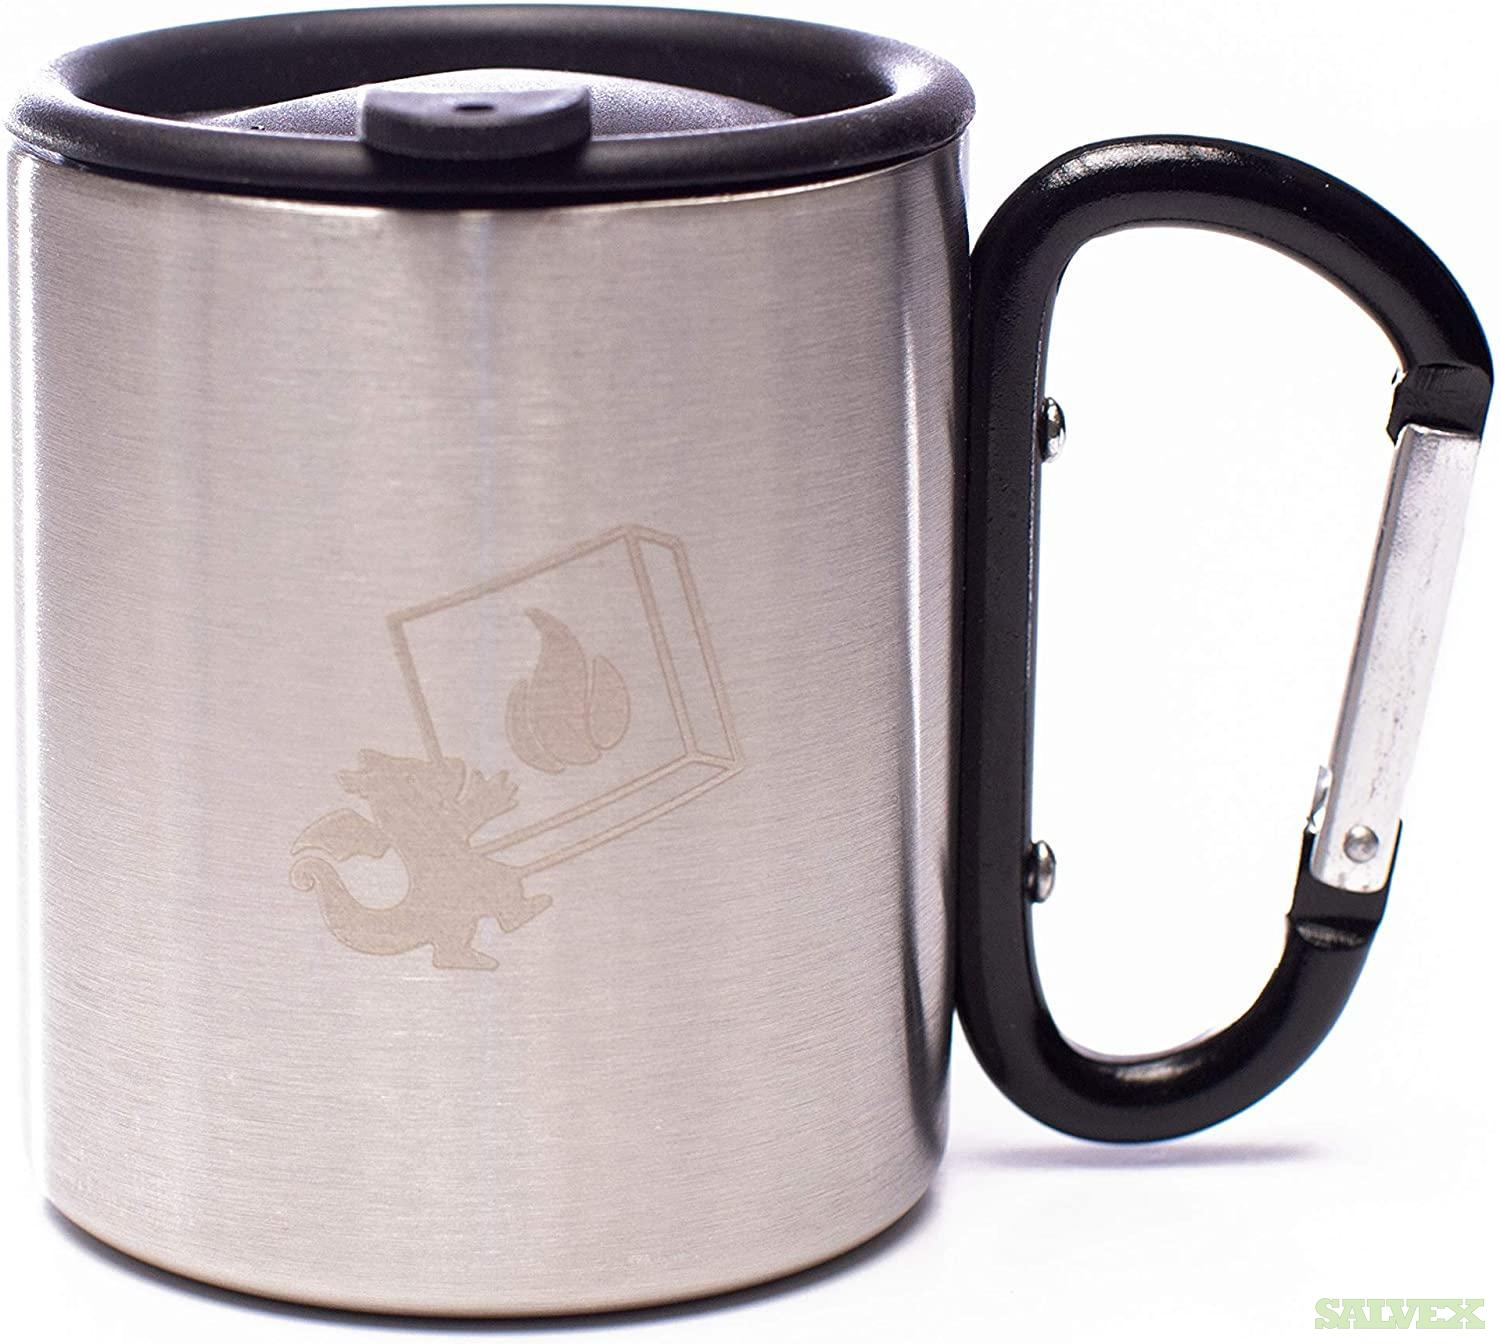 DragonEra Stainless Steel Mug with Carabiner Handle and Cover (460 Units)